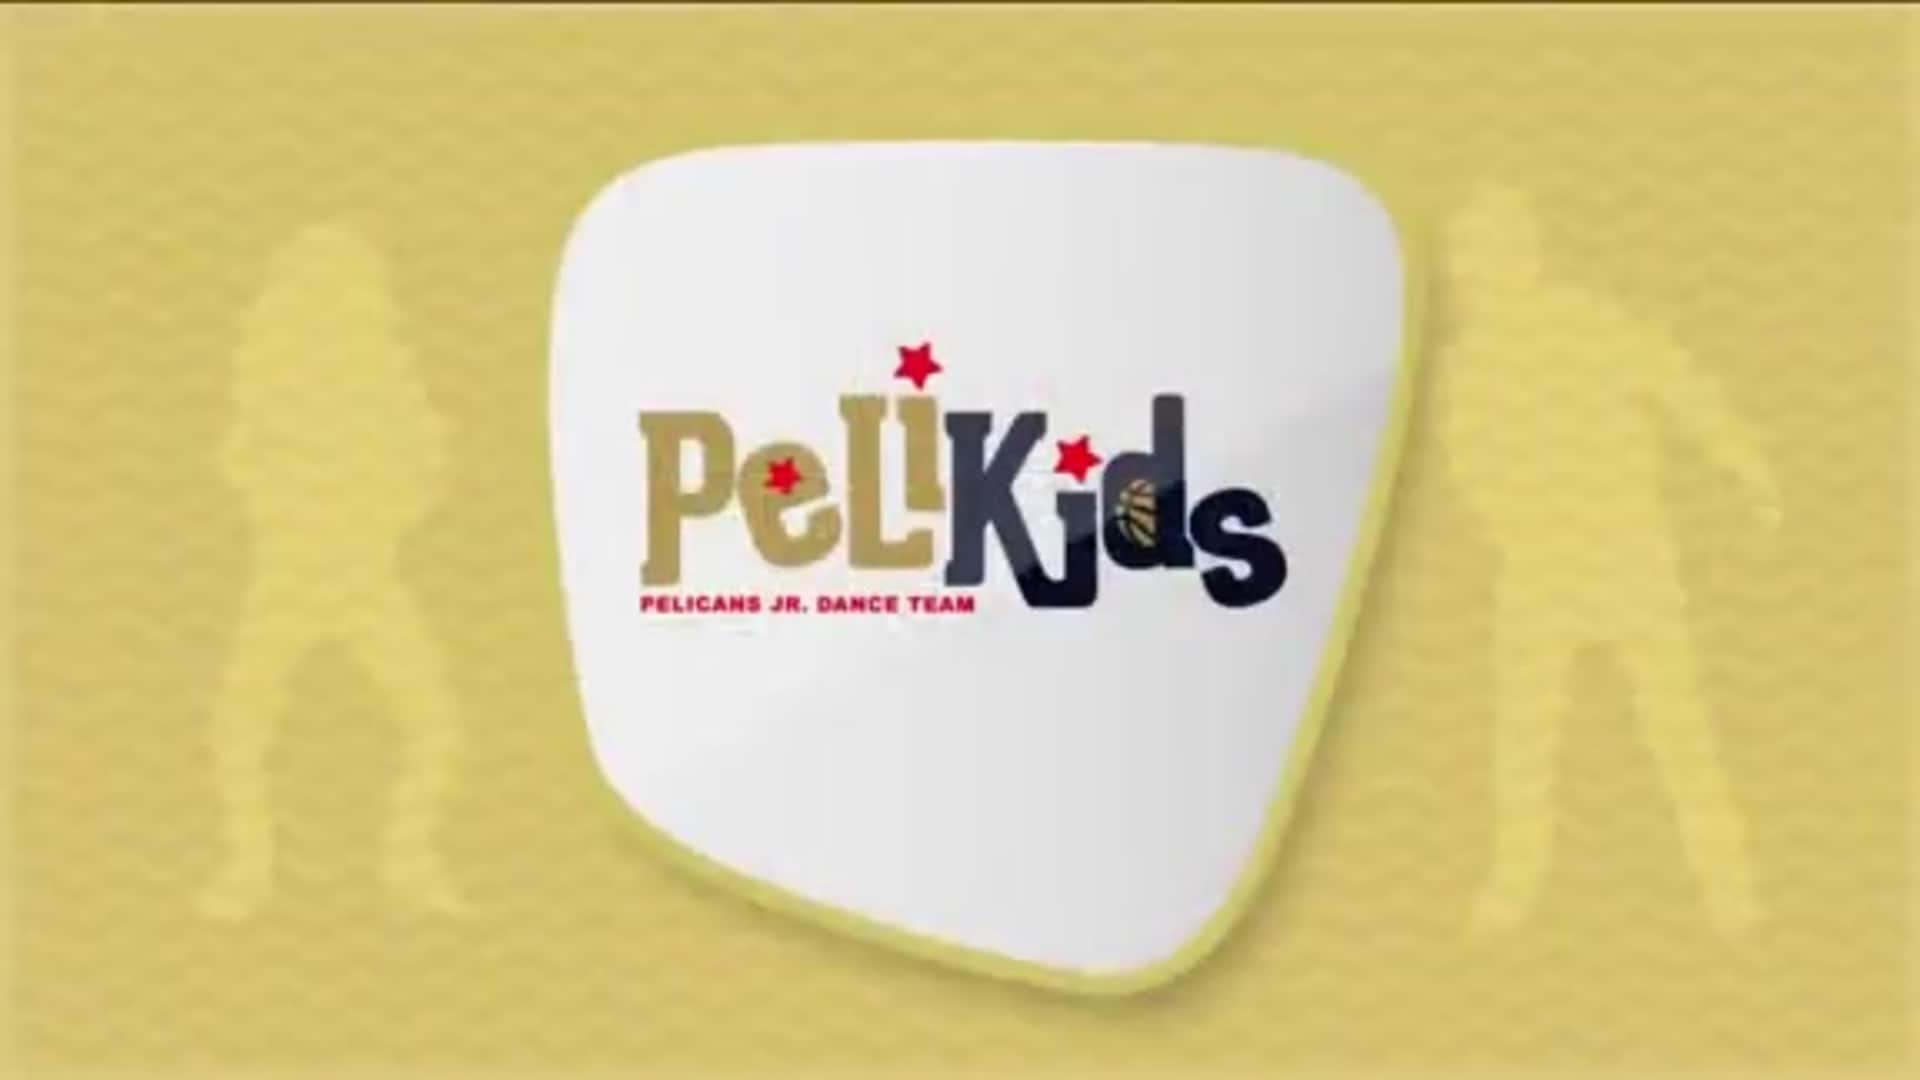 Entertainment: PeliKids Dance Team performance - March 1 vs. Los Angeles Lakers